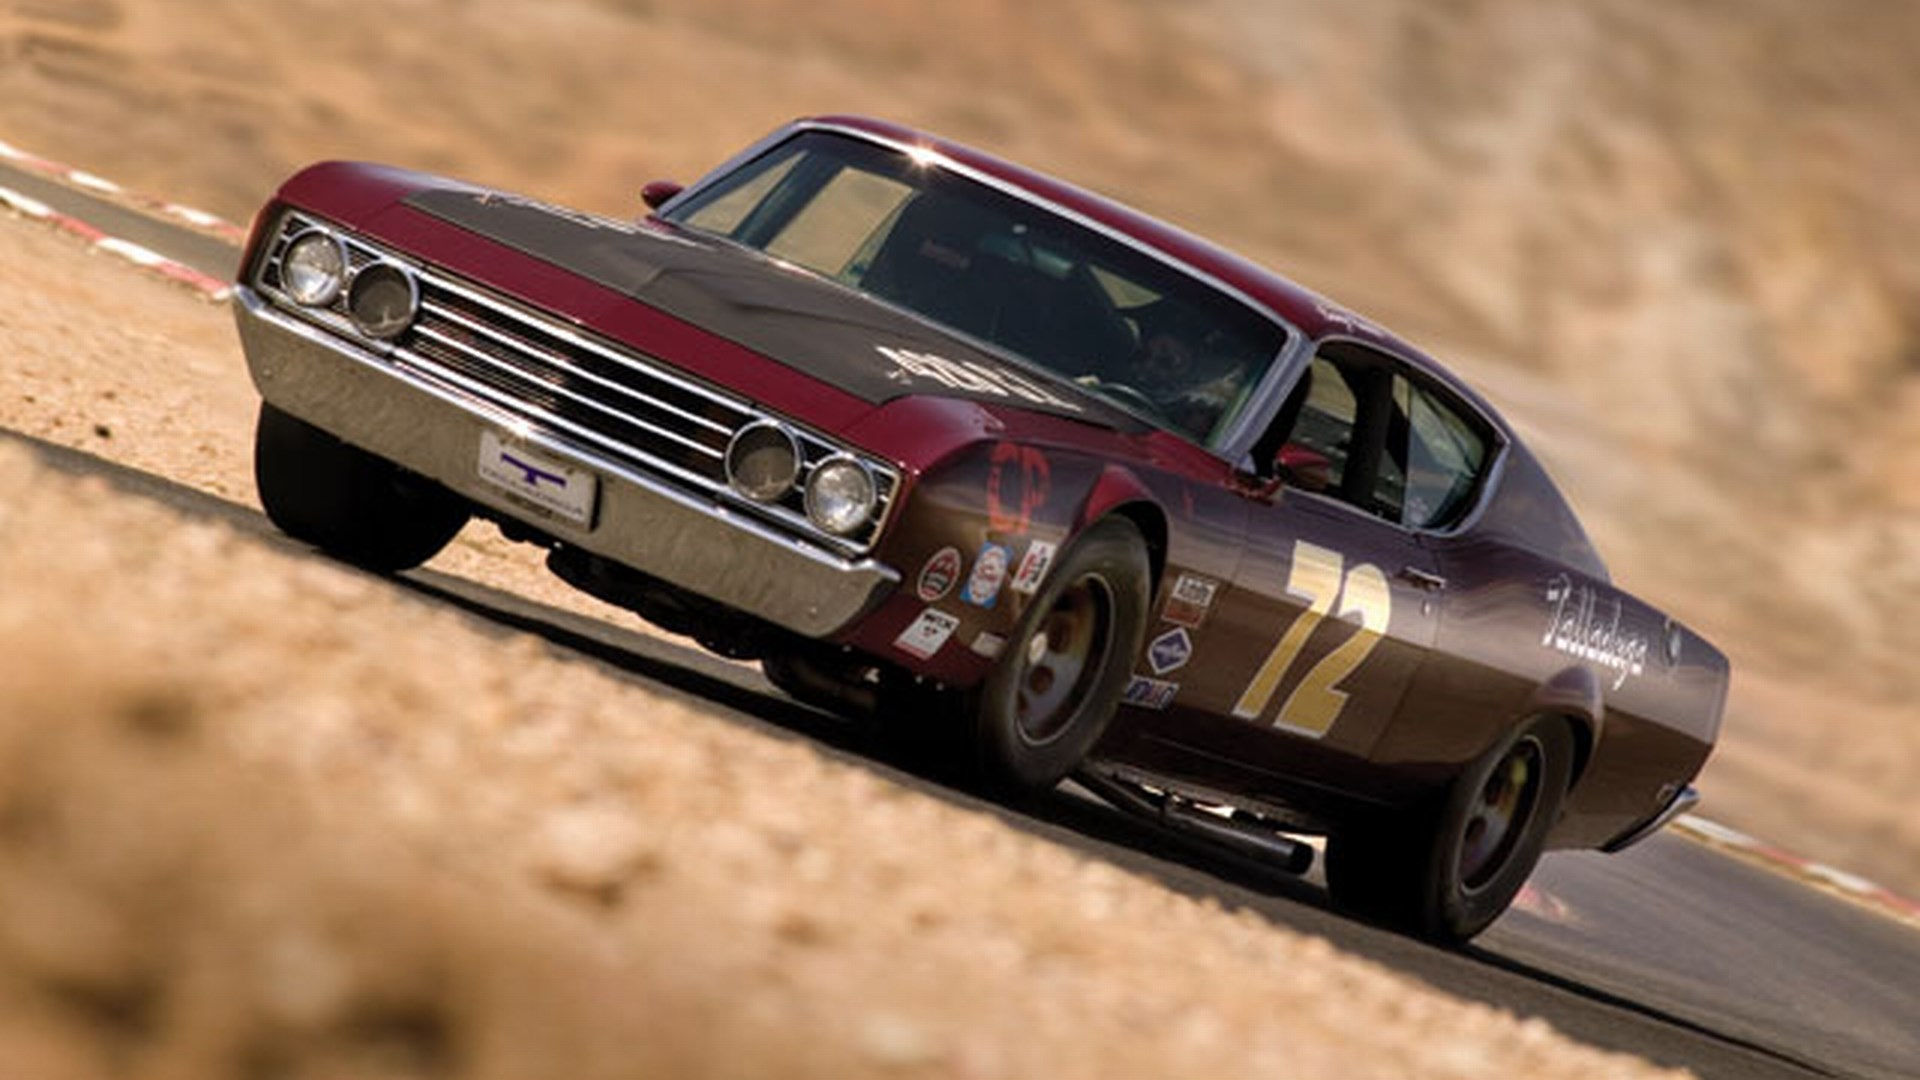 1920x1080-HQ-RES-ford-torino-talladega-wallpaper-wpc900923